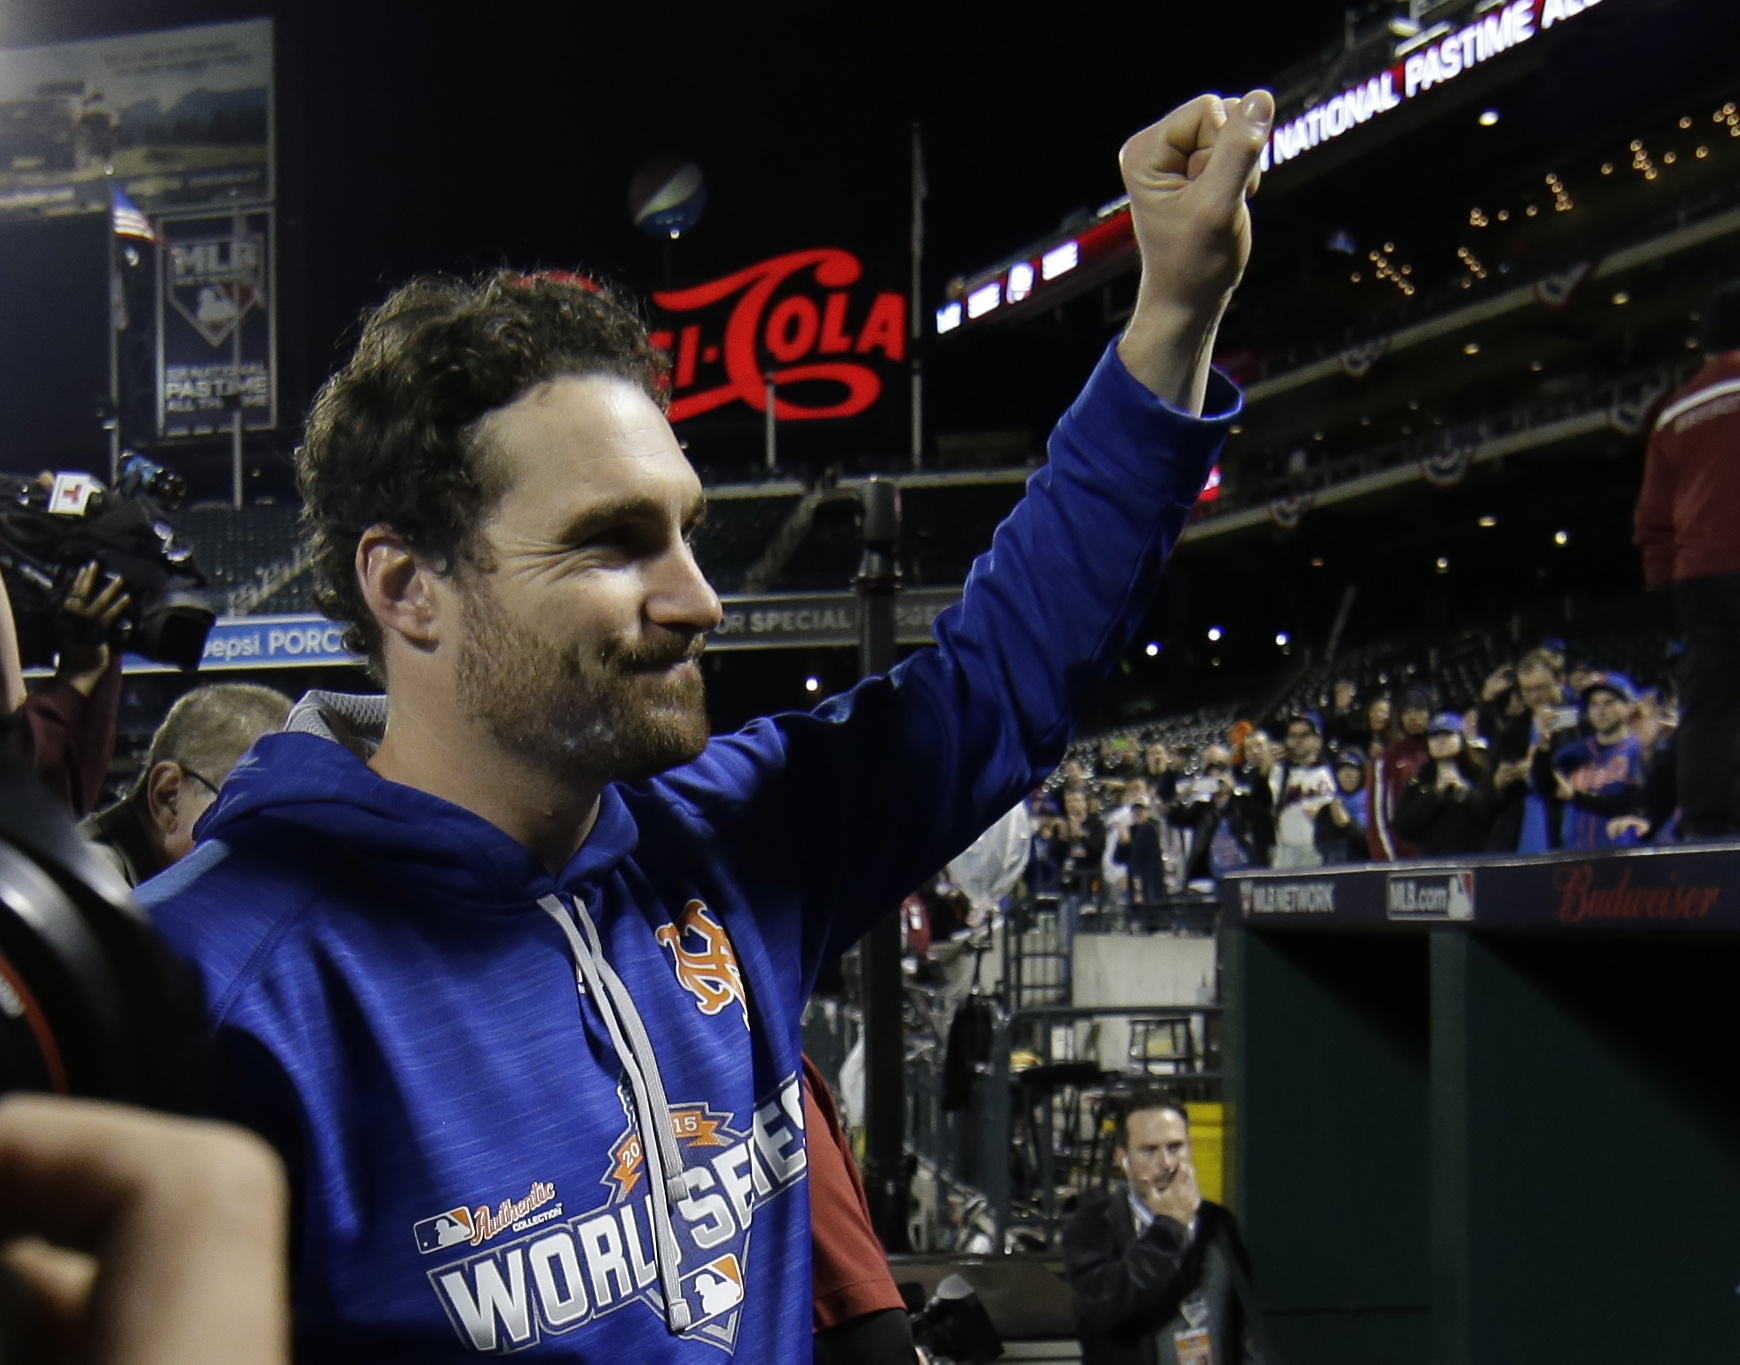 New York Mets' Daniel Murphy waves to fans after Game 5 of the Major League Baseball World Series against the Kansas City Royals Monday, Nov. 2, 2015, in New York. The Royals won 7-2 to win the series. (AP Photo/Matt Slocum)